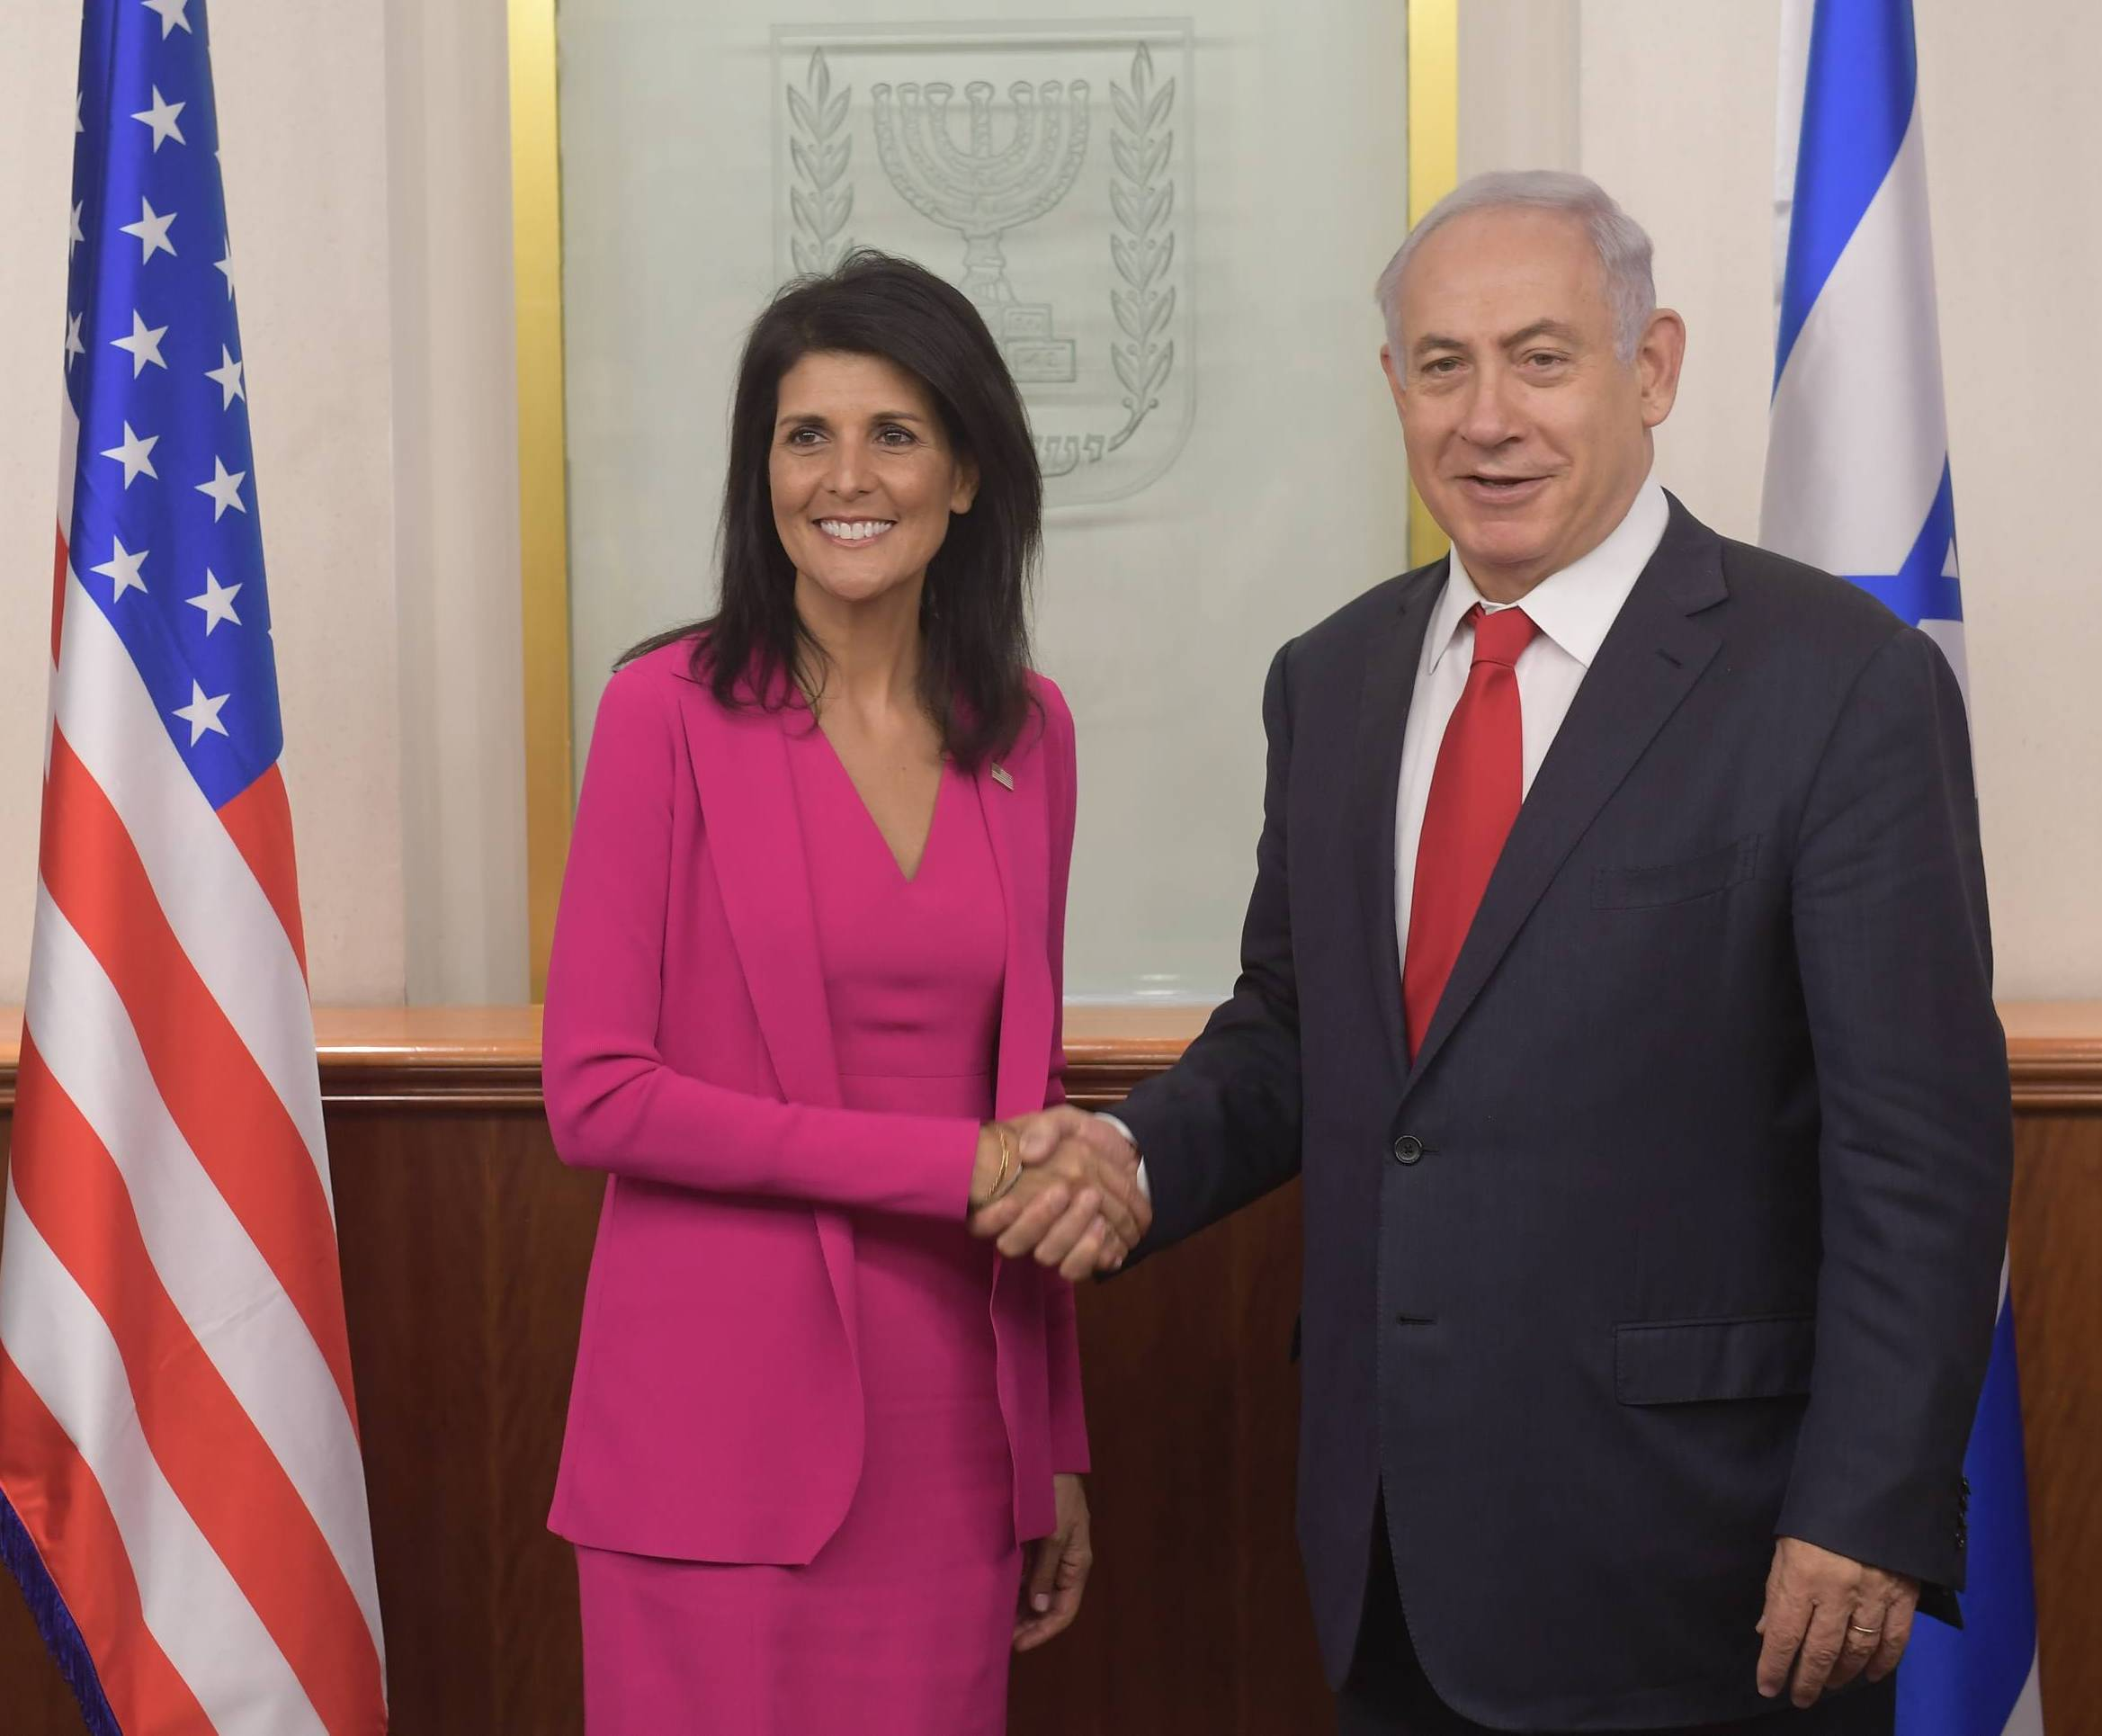 PM Netanyahu and Nikki Haley